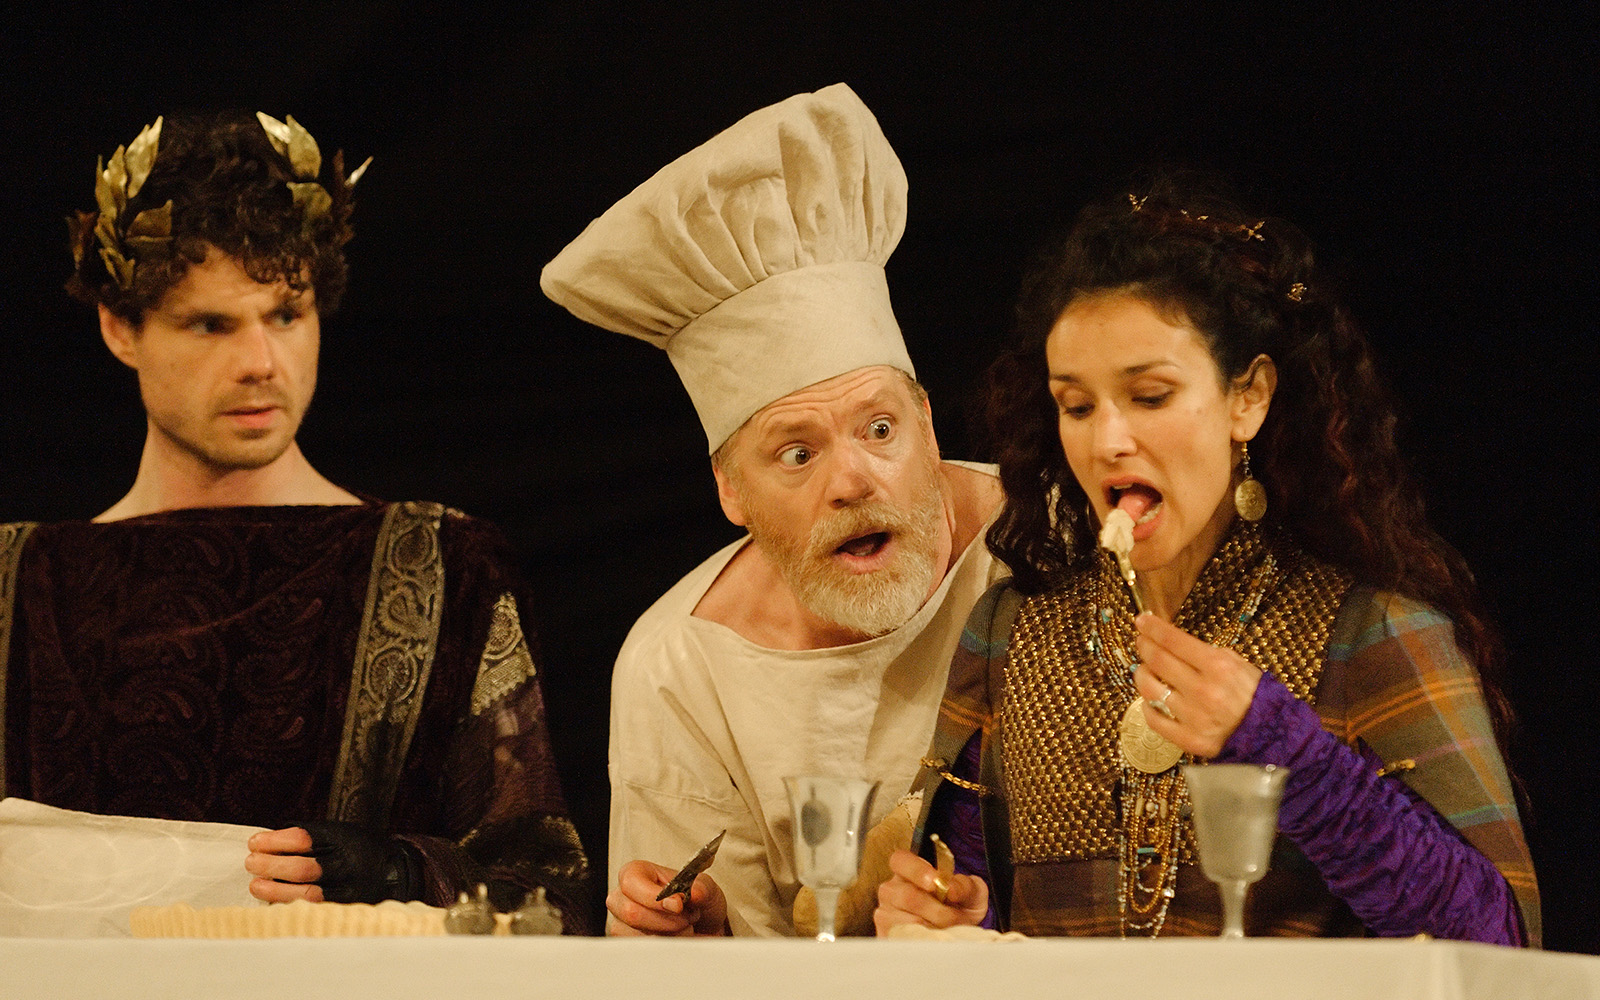 A man wearing a chef's hat watches as a woman raises a forkful of food to her mouth.